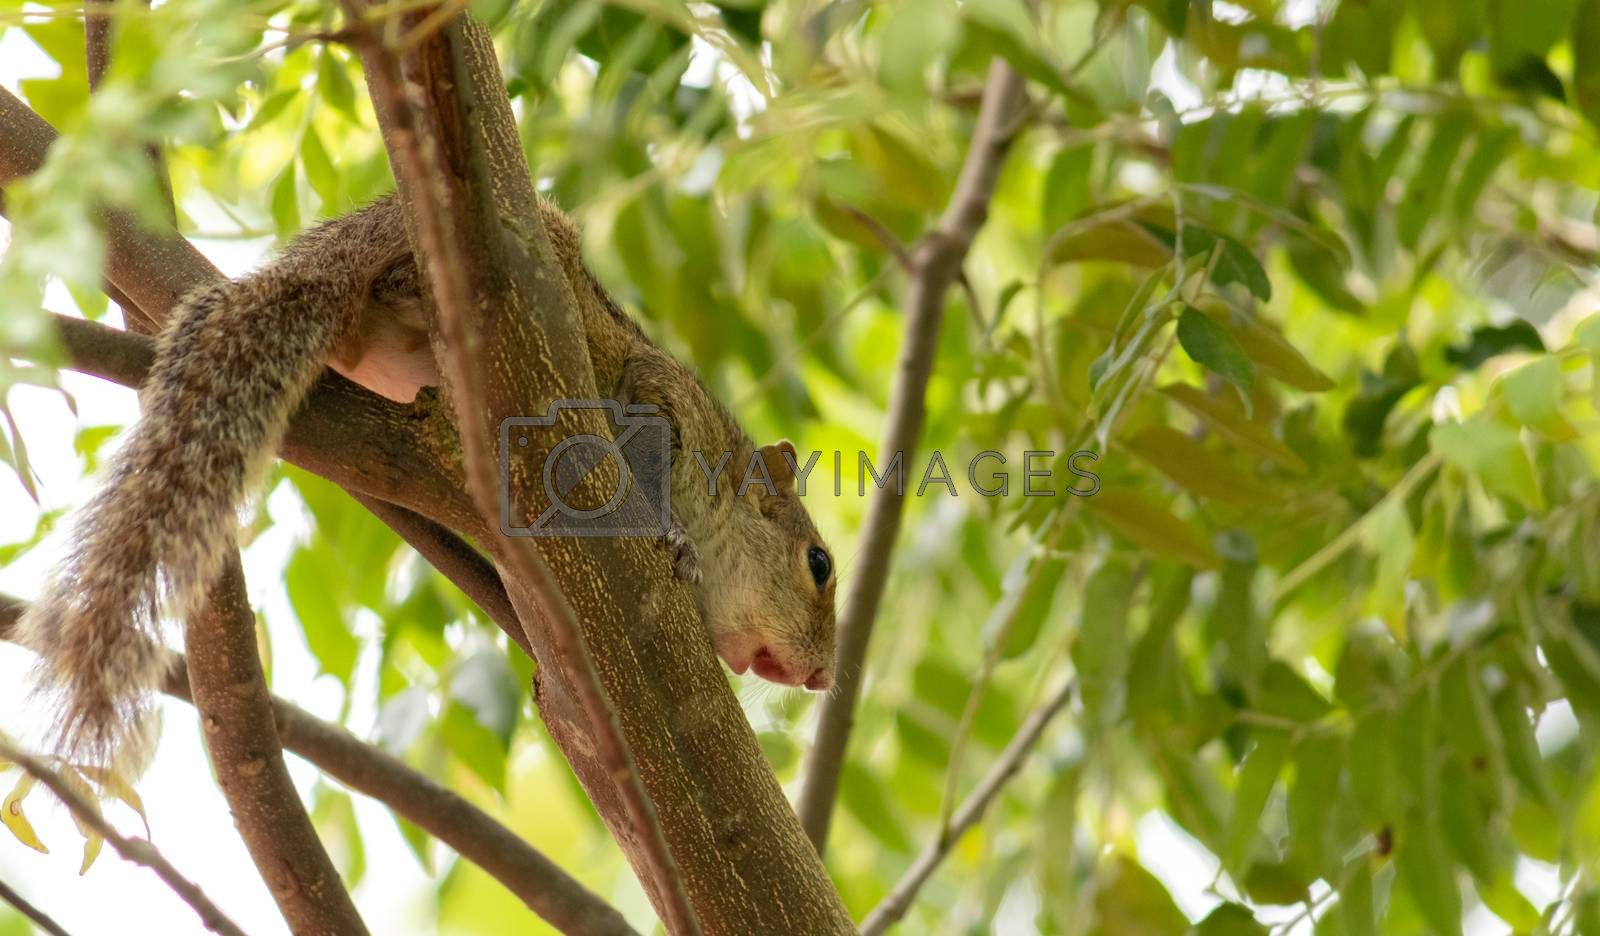 Squirrel on a tree branch in the shade photograph from below